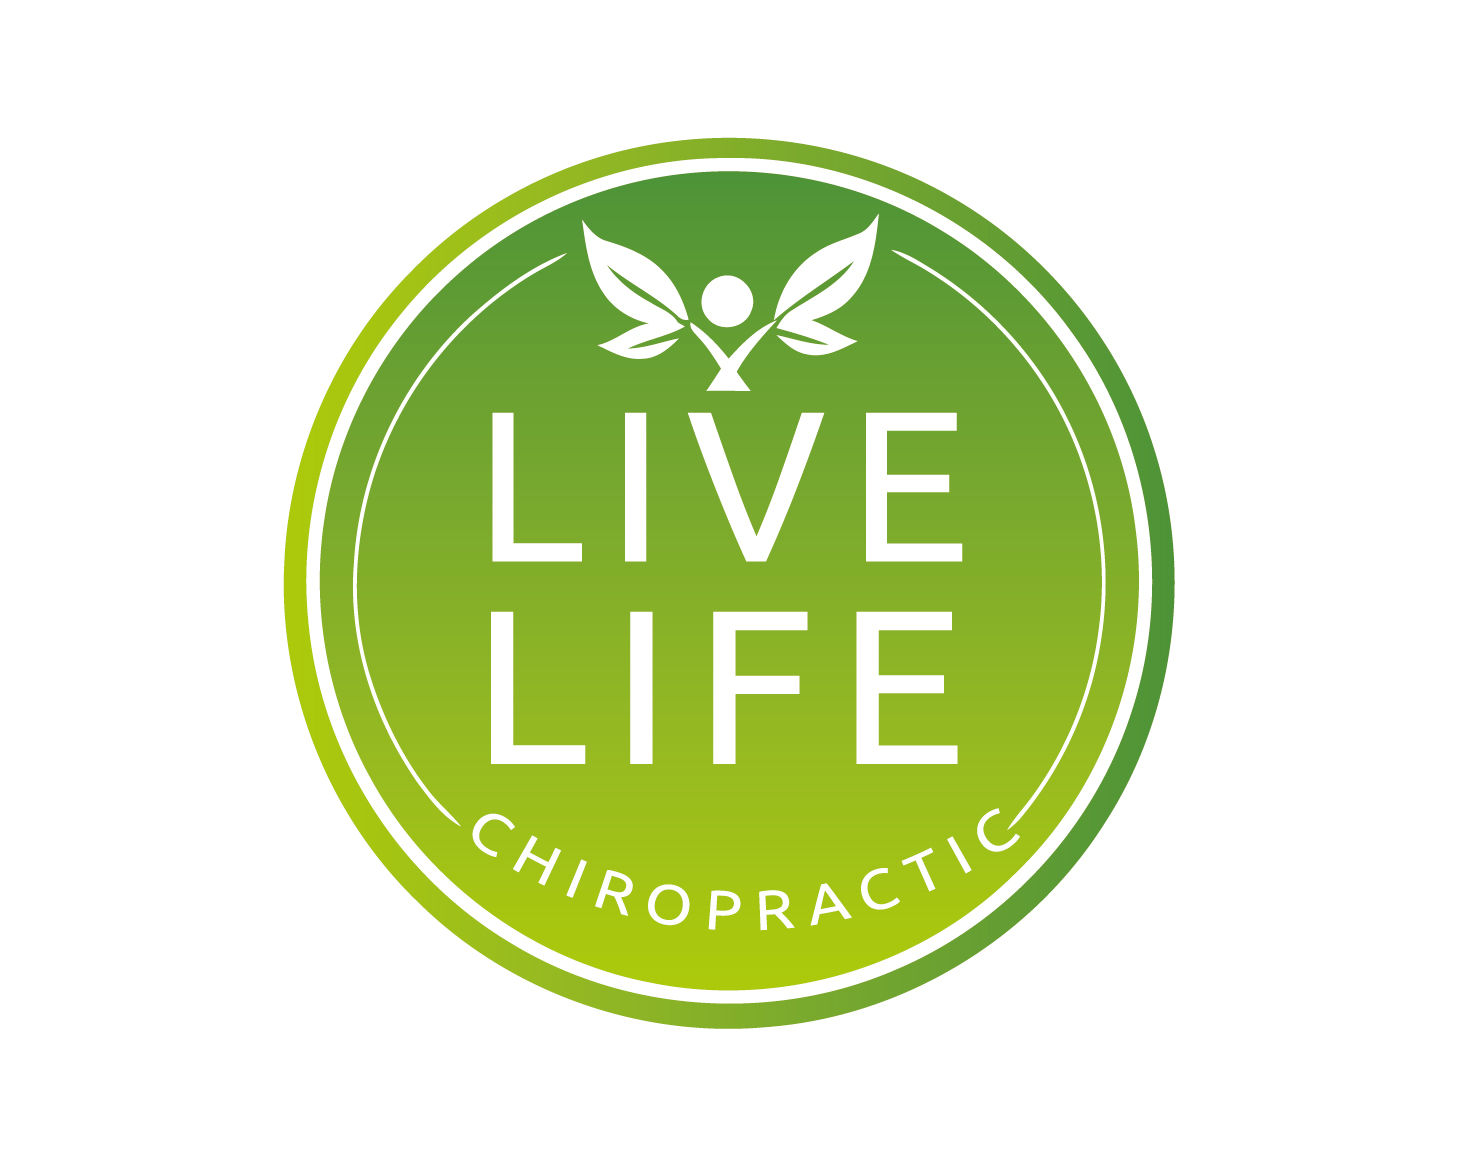 Logo Design by VENTSISLAV KOVACHEV - Entry No. 51 in the Logo Design Contest Captivating Logo Design for LiveLife Chiropractic.